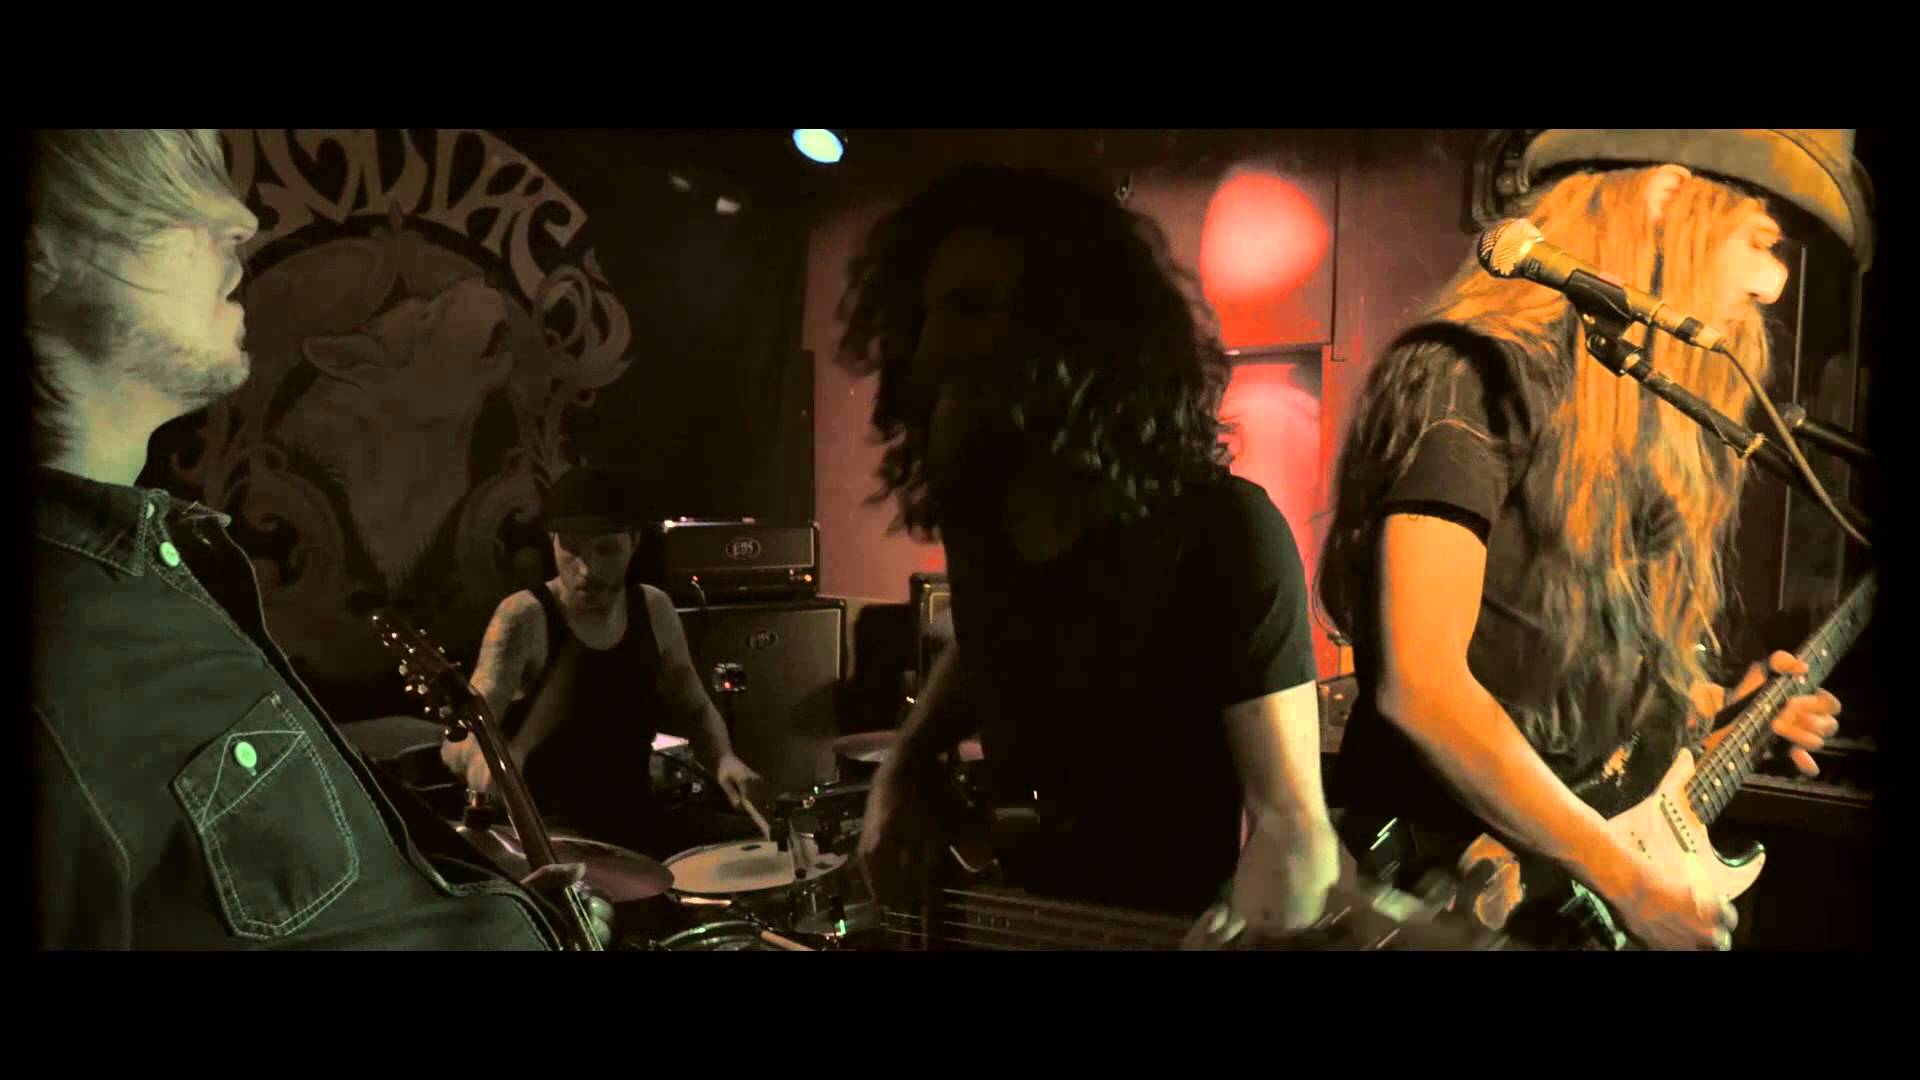 ZODIAC - Holding On (Official Live Video) Napalm Records